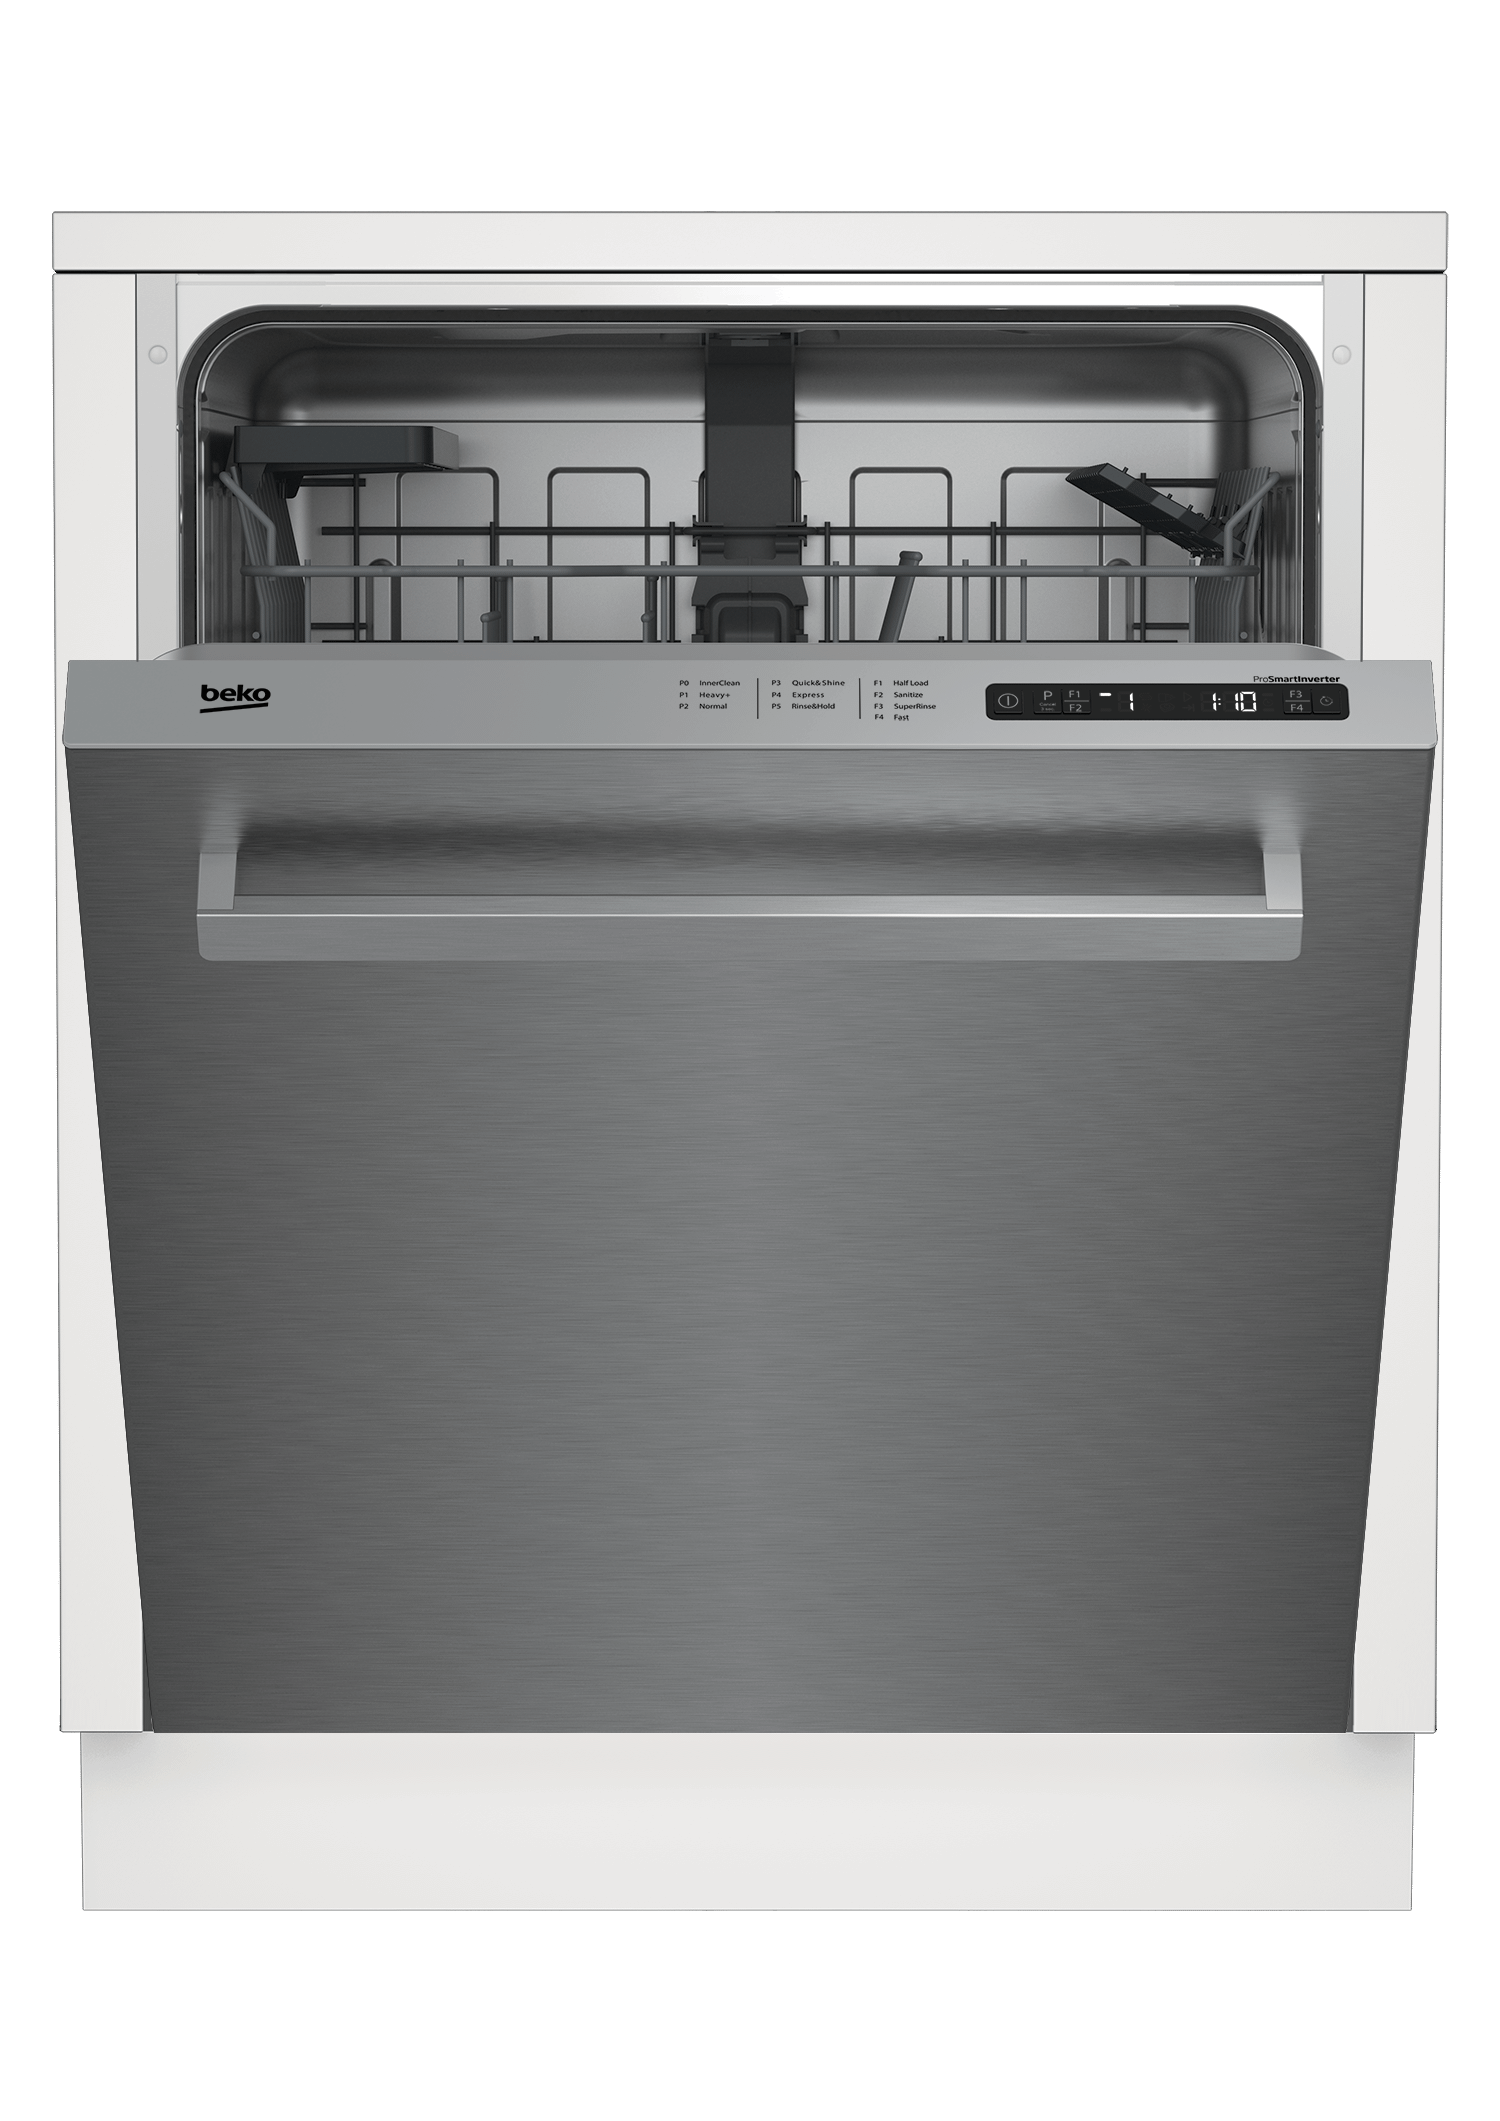 Full Size Stainless Dishwasher, 14 place settings, 48 dBa, Top Control